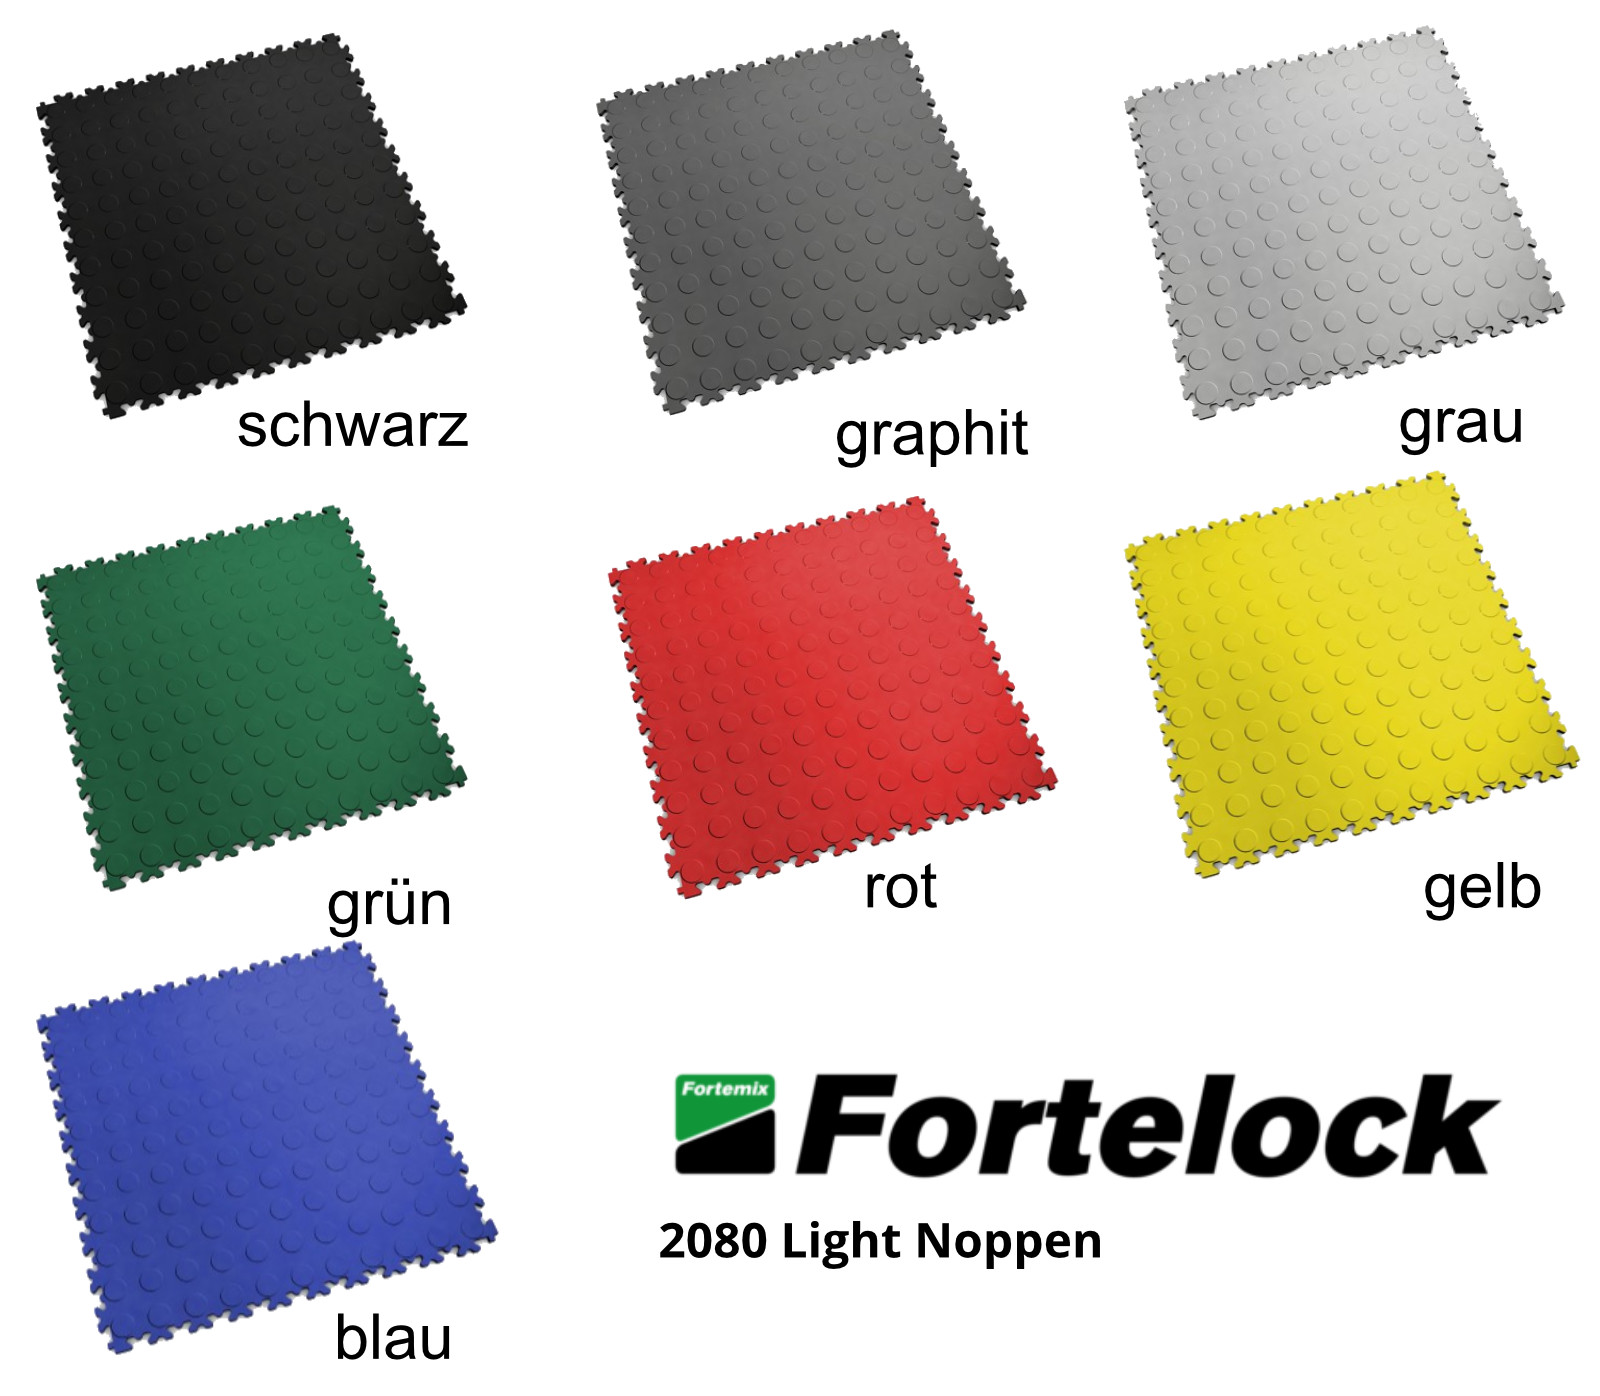 fortelock-light-2080-noppen